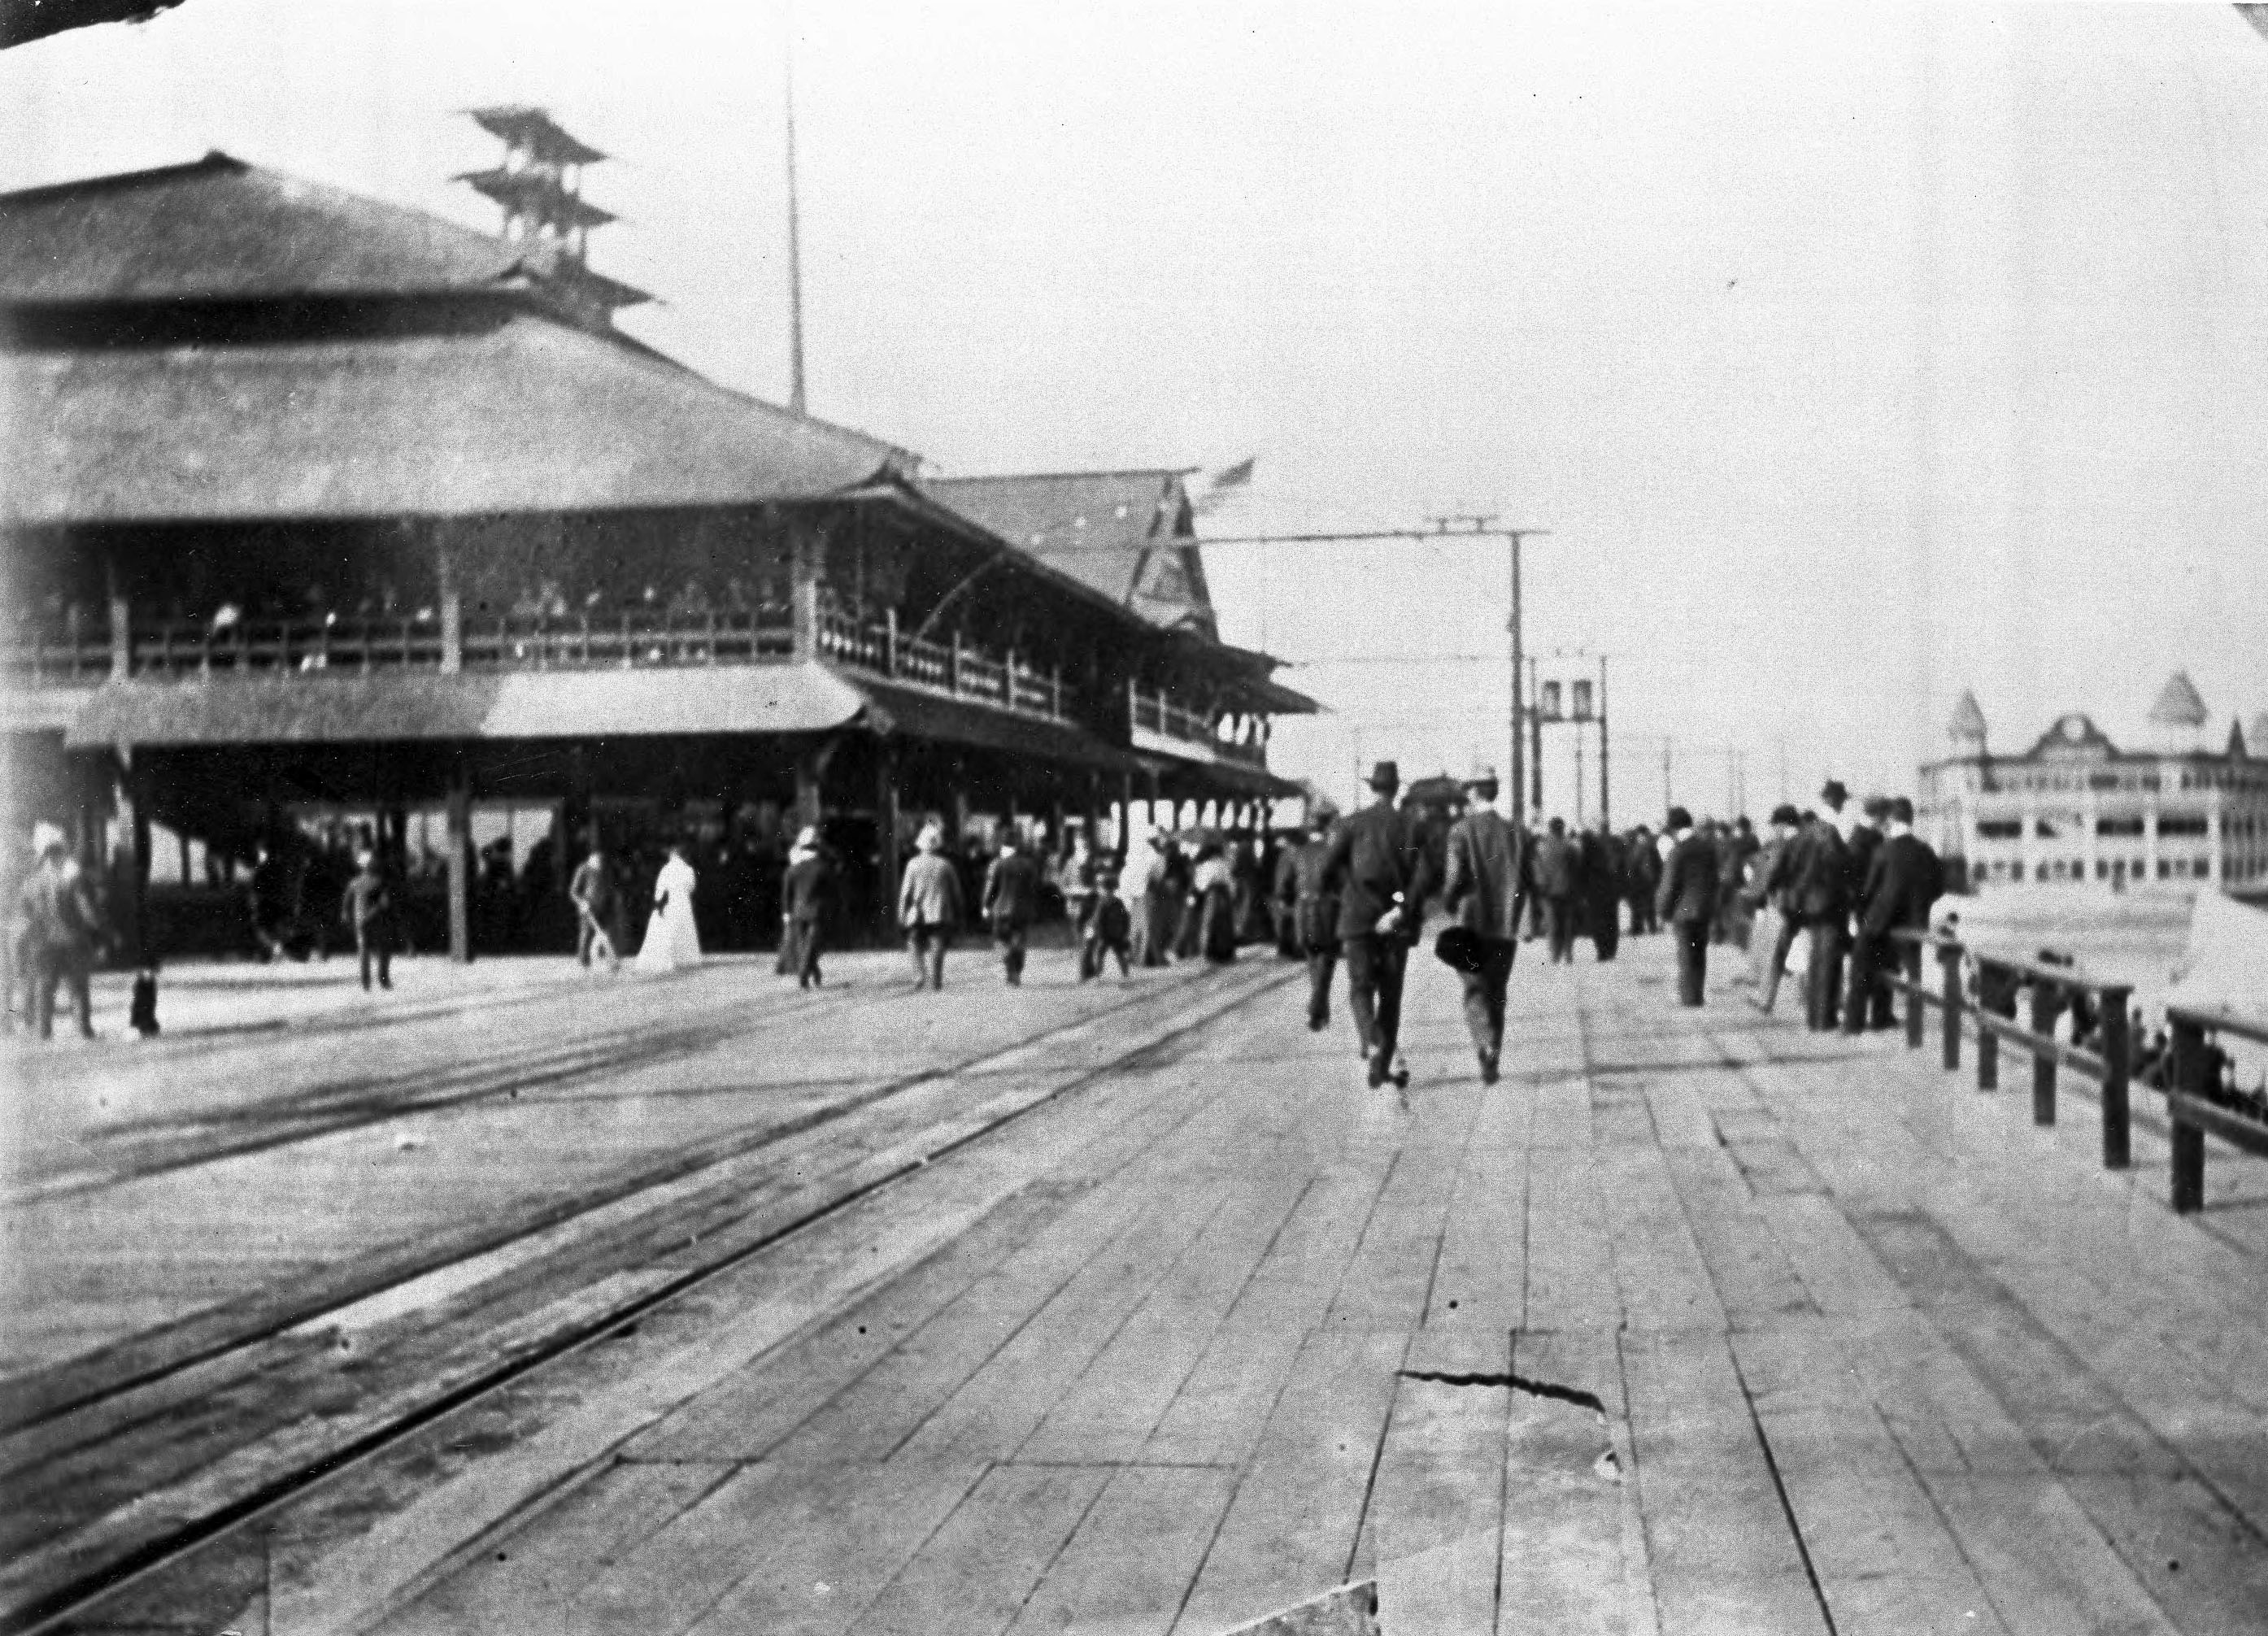 Balloon Route passengers on the Playa Del Rey boardwalk (c. 1908)